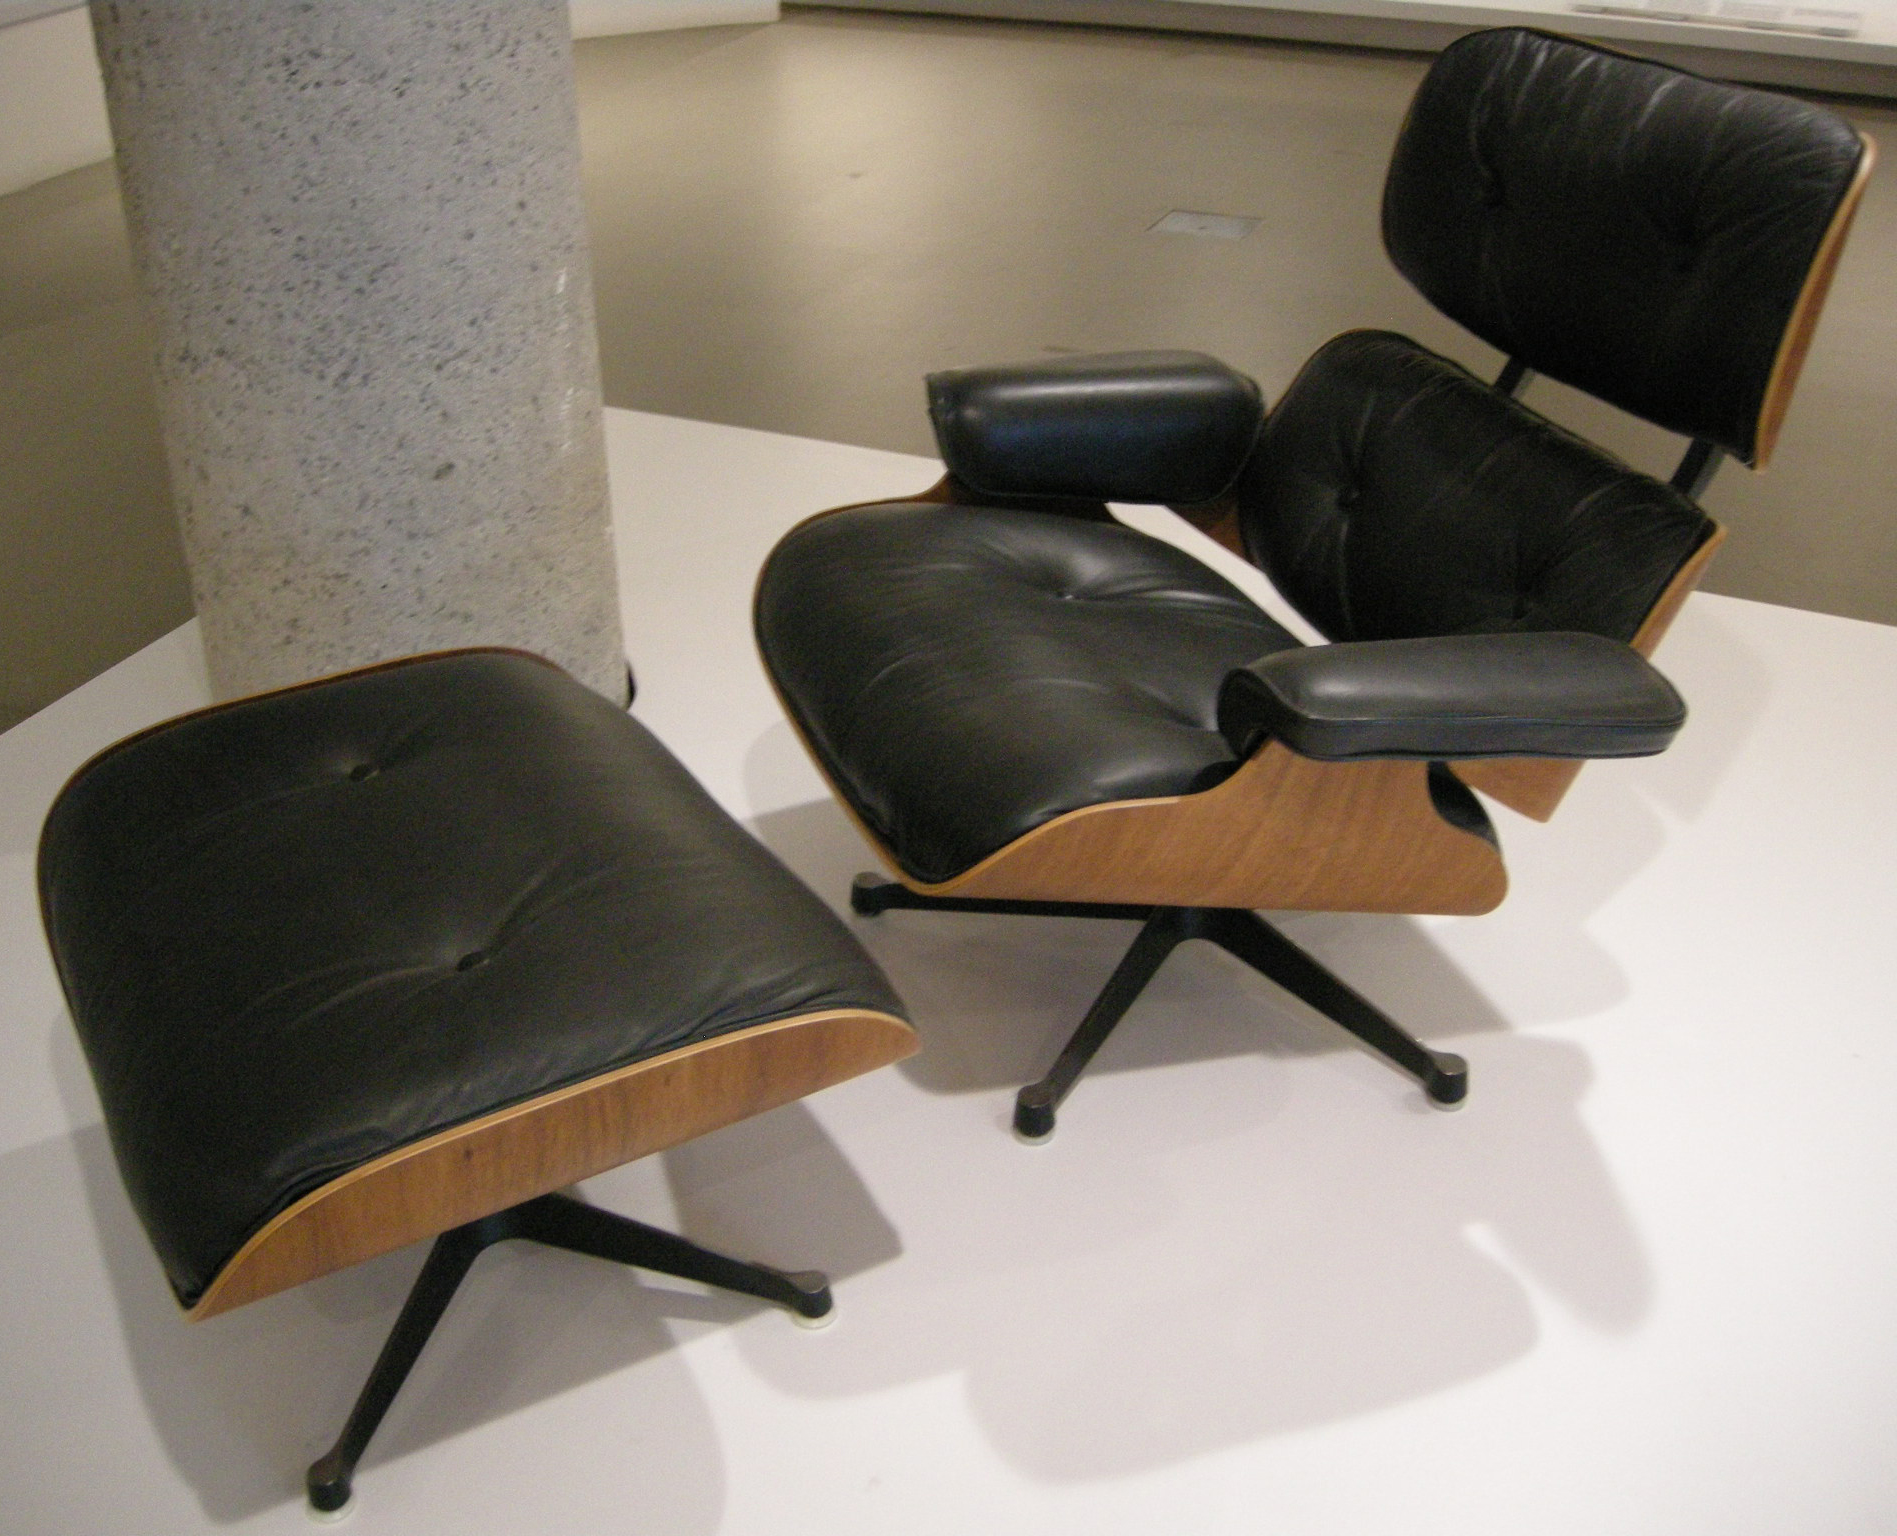 File:Ngv Design, Charles Eames And Herman Miller, Lounge Chair 670, 1956